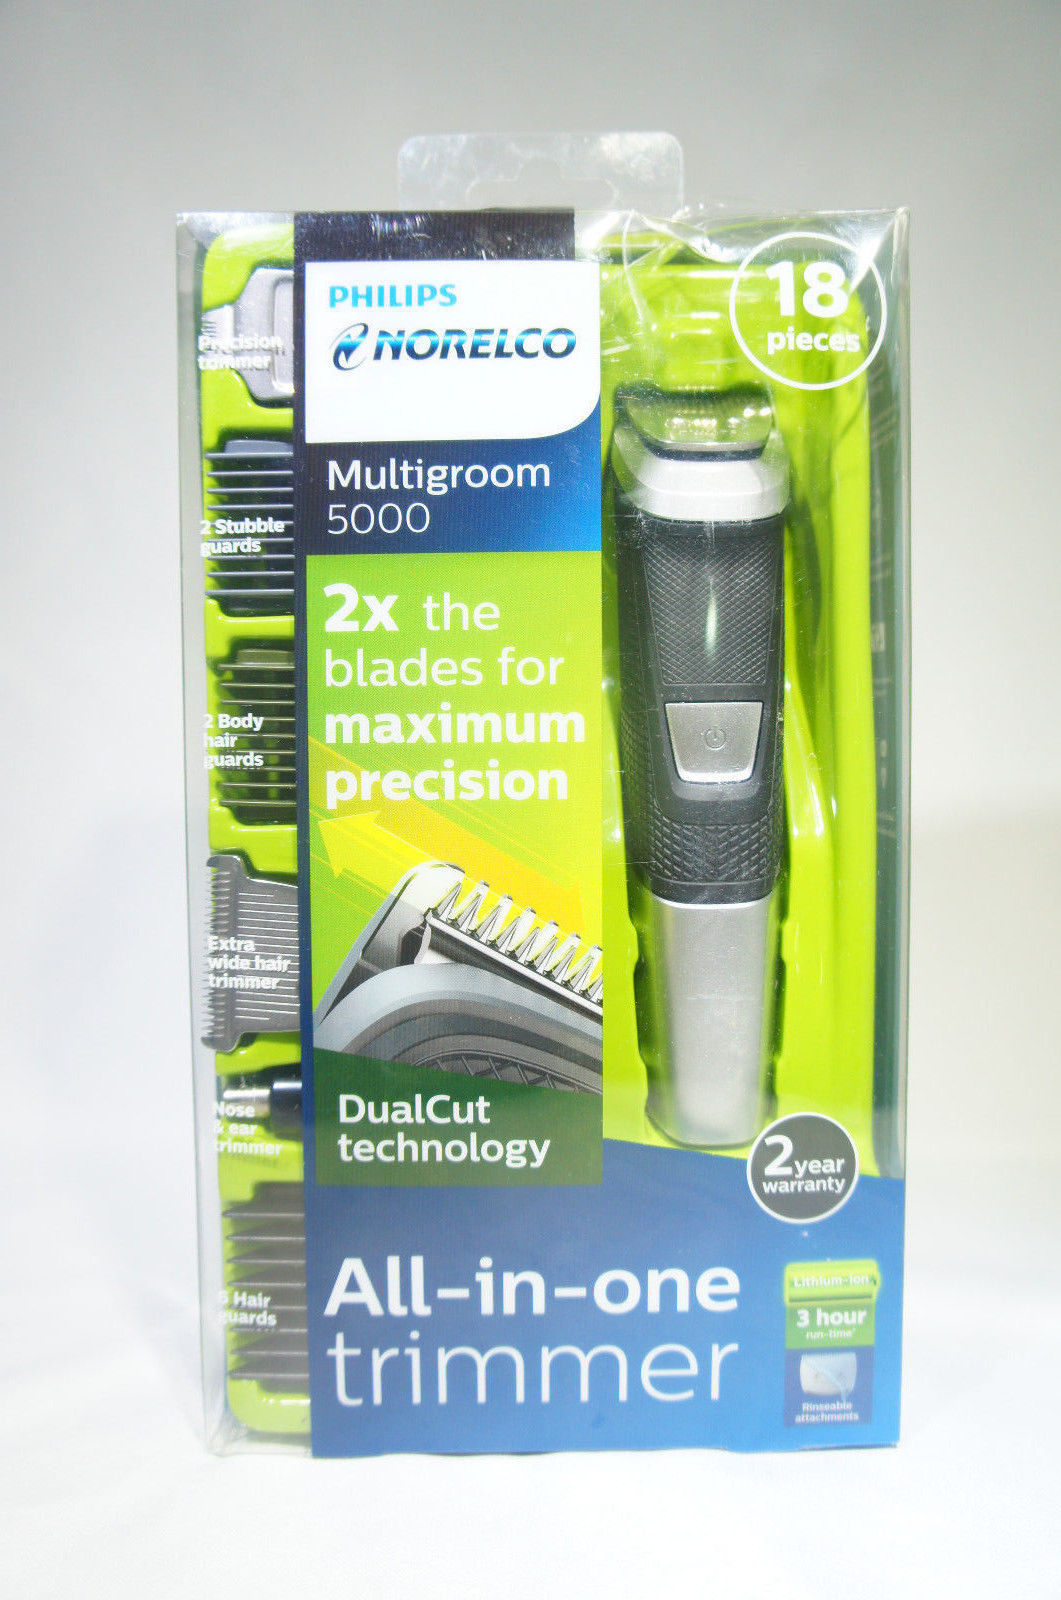 Philips NORELCO MG5750/49 Multigroom 5000 Trimmer 18 Pieces